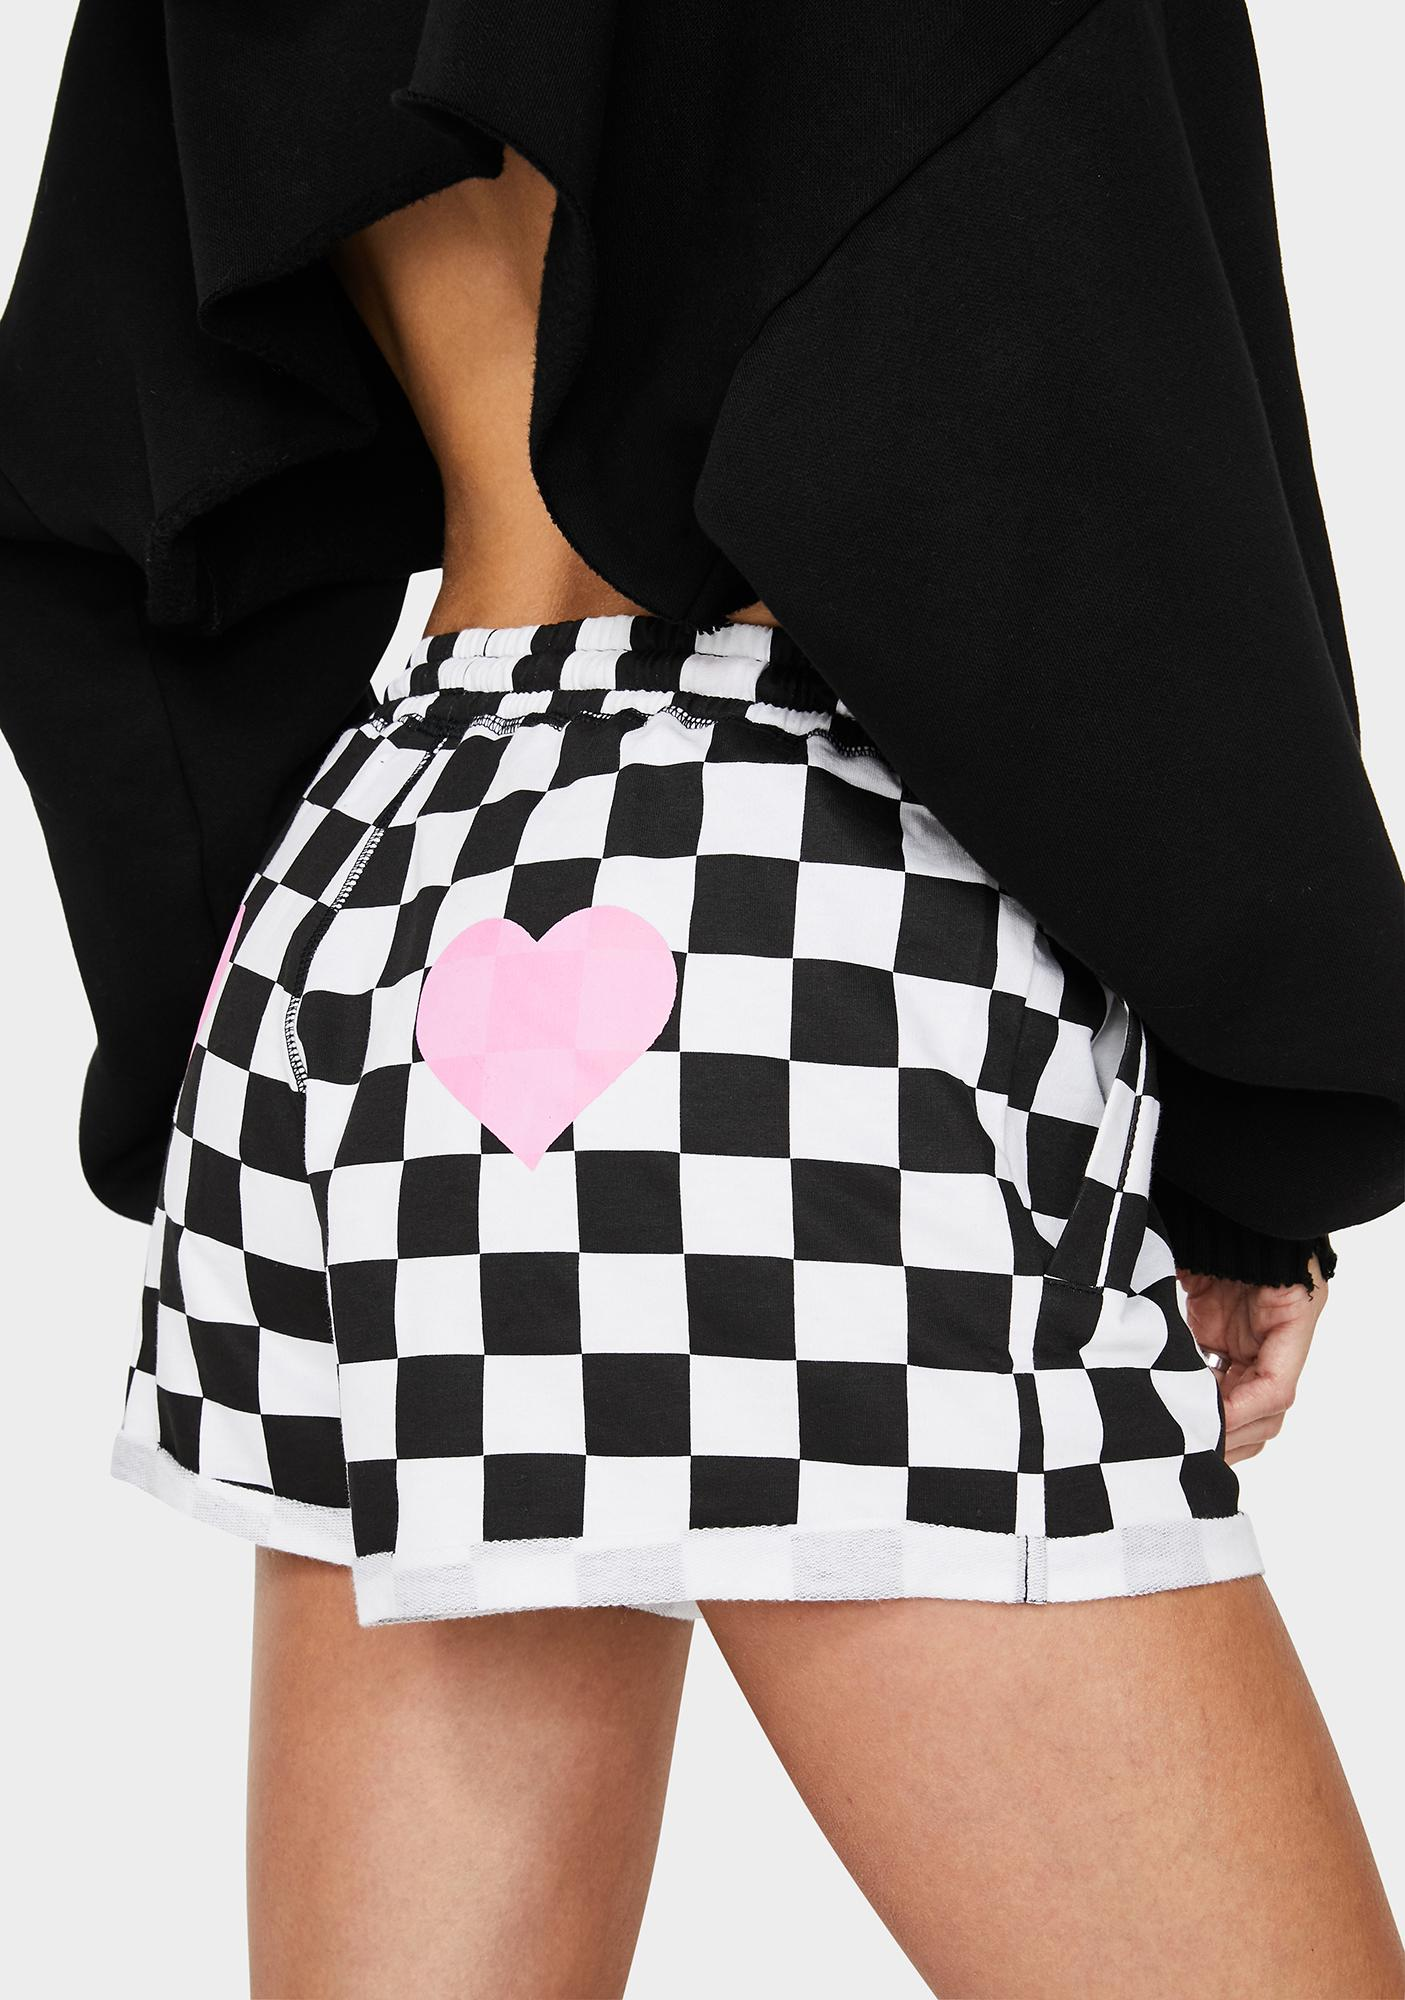 Cute Mistake Hanky Panky Pink Heart Checkered Shorts